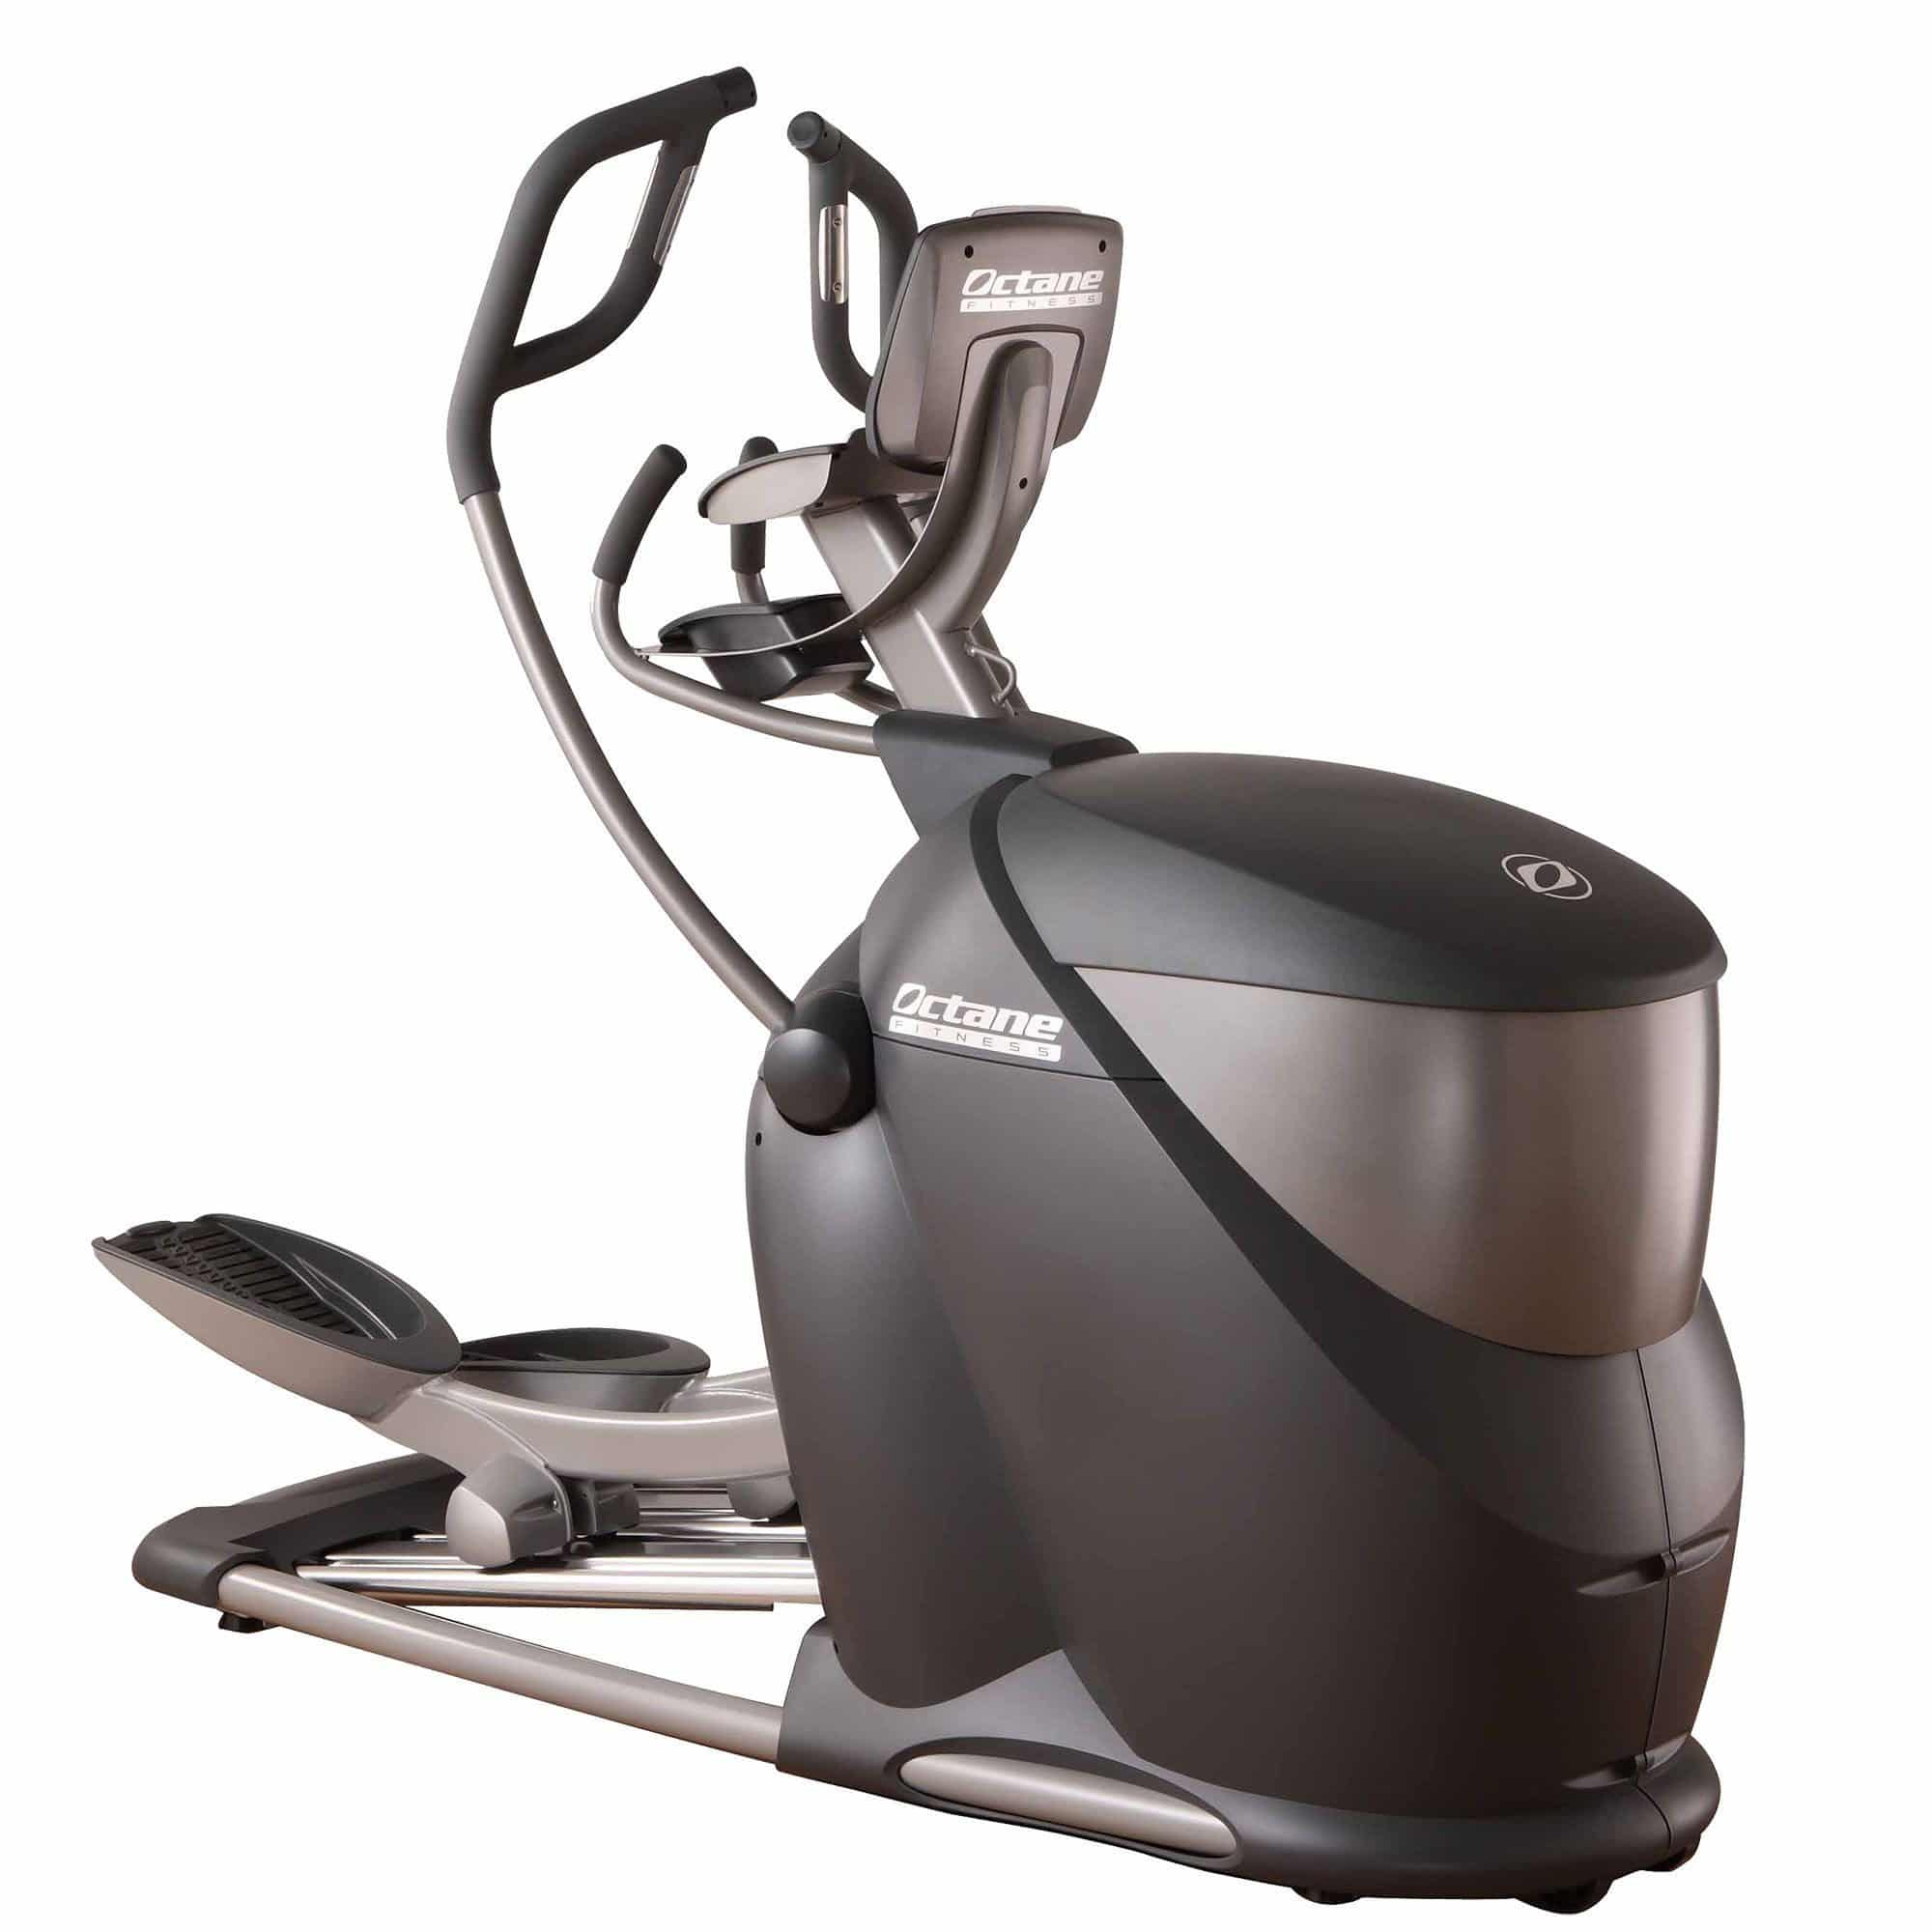 Octane Q47xi Standing Elliptical Fitness Expo